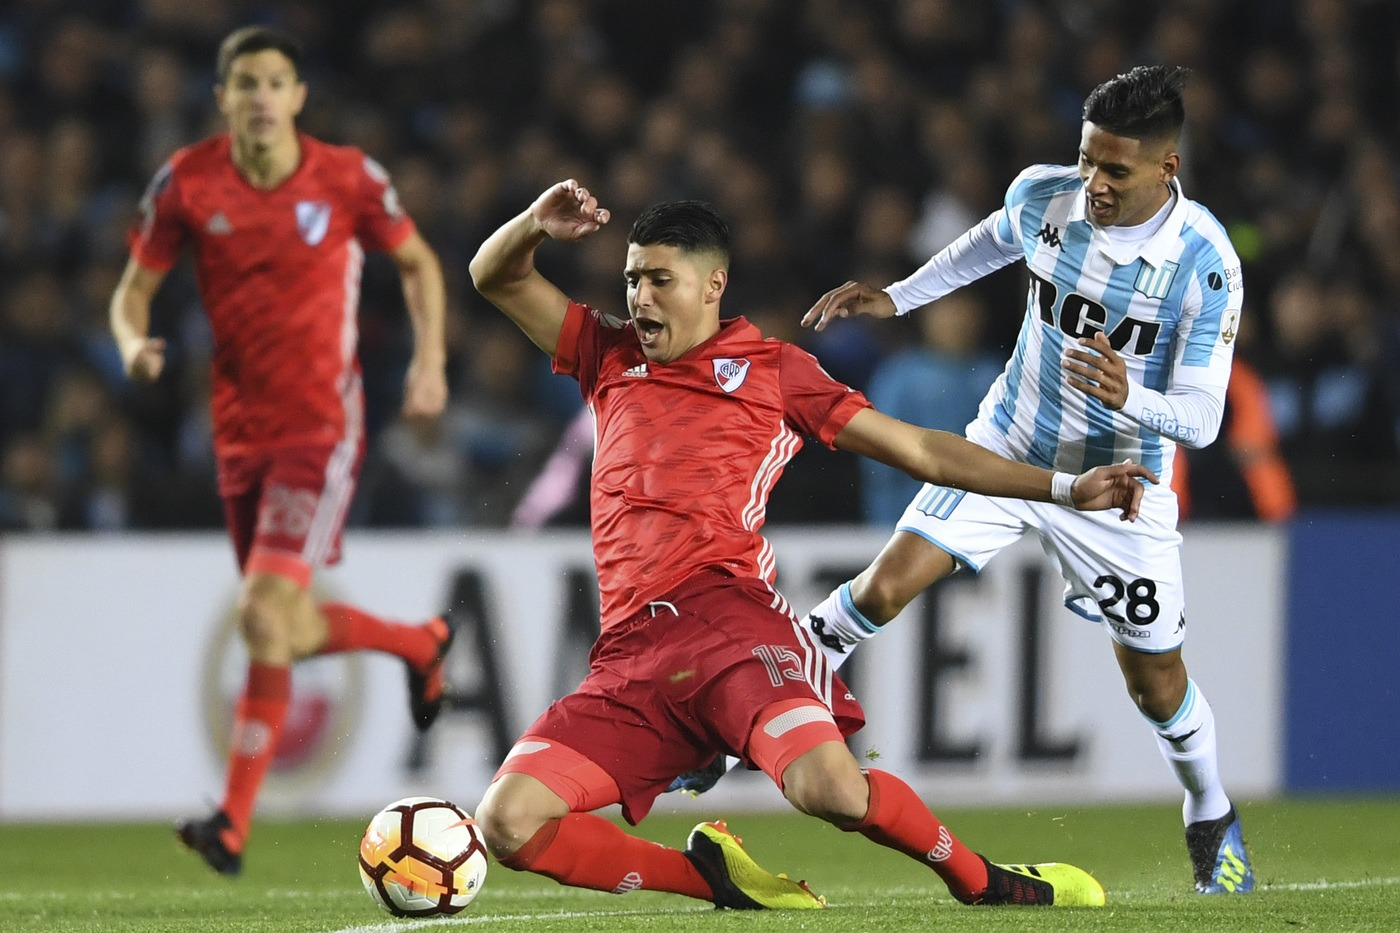 River Plate Contra Racing: River Plate-Racing Club Mercoledì 29 Agosto: Derby In Bilico